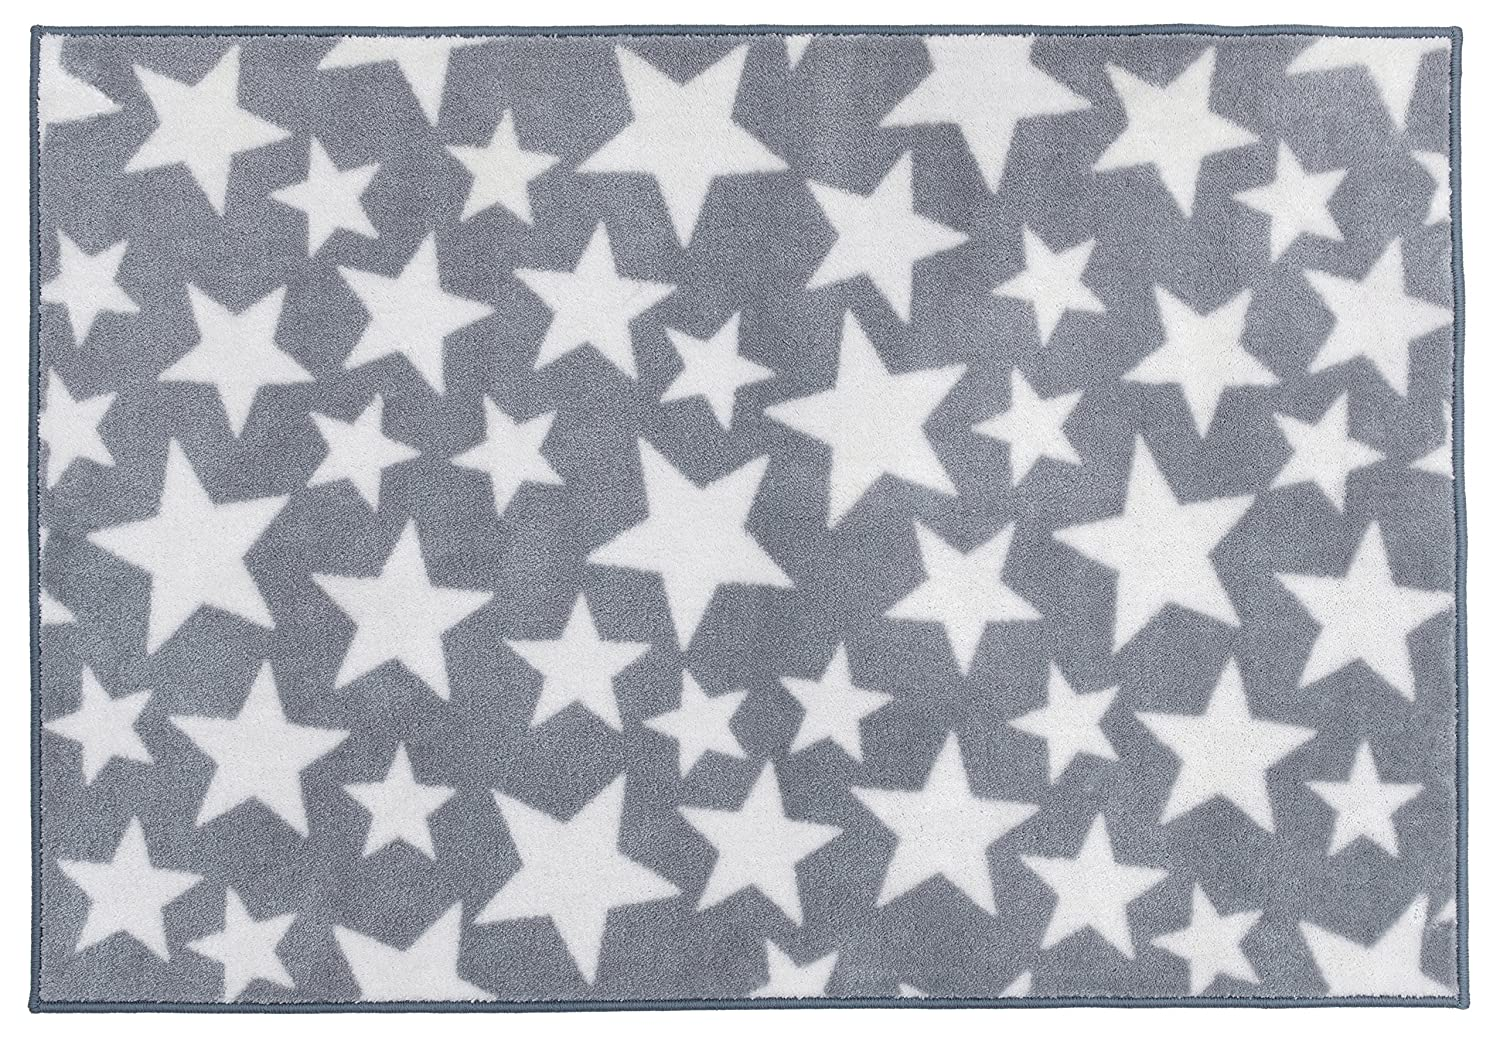 Grey with White Stars Kit for Kids Nursery Rug